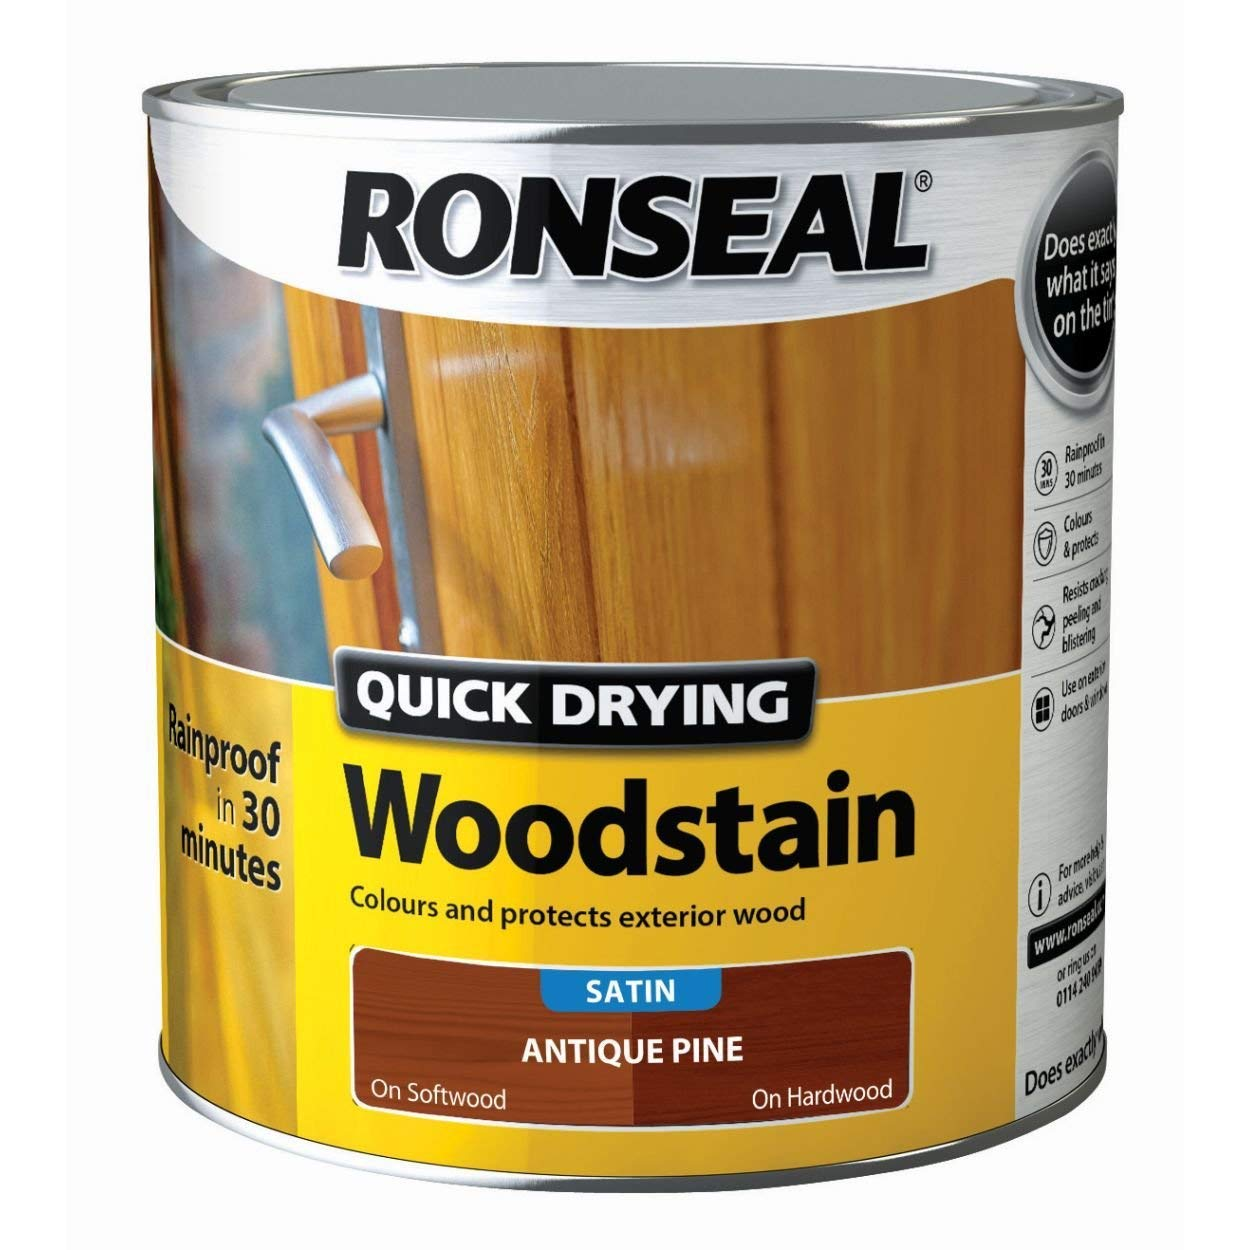 Ronseal Quick Drying Woodstain Satin Antique Pine 750ml 08736